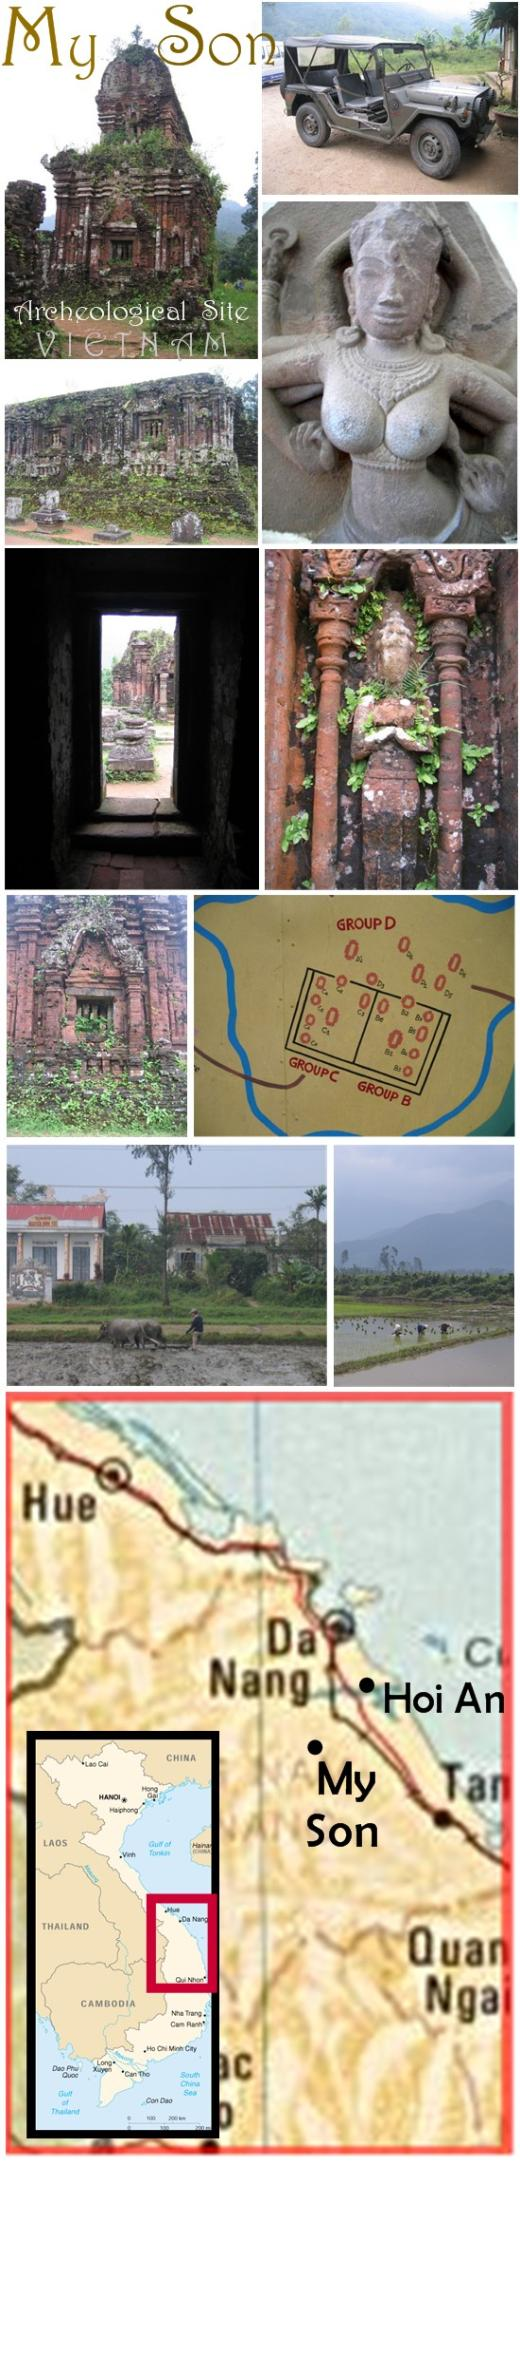 A photo collage from the My Son Archeological site near Hoi An, Vietnam with images of an American military jeep, many ruins and a map of the complex.